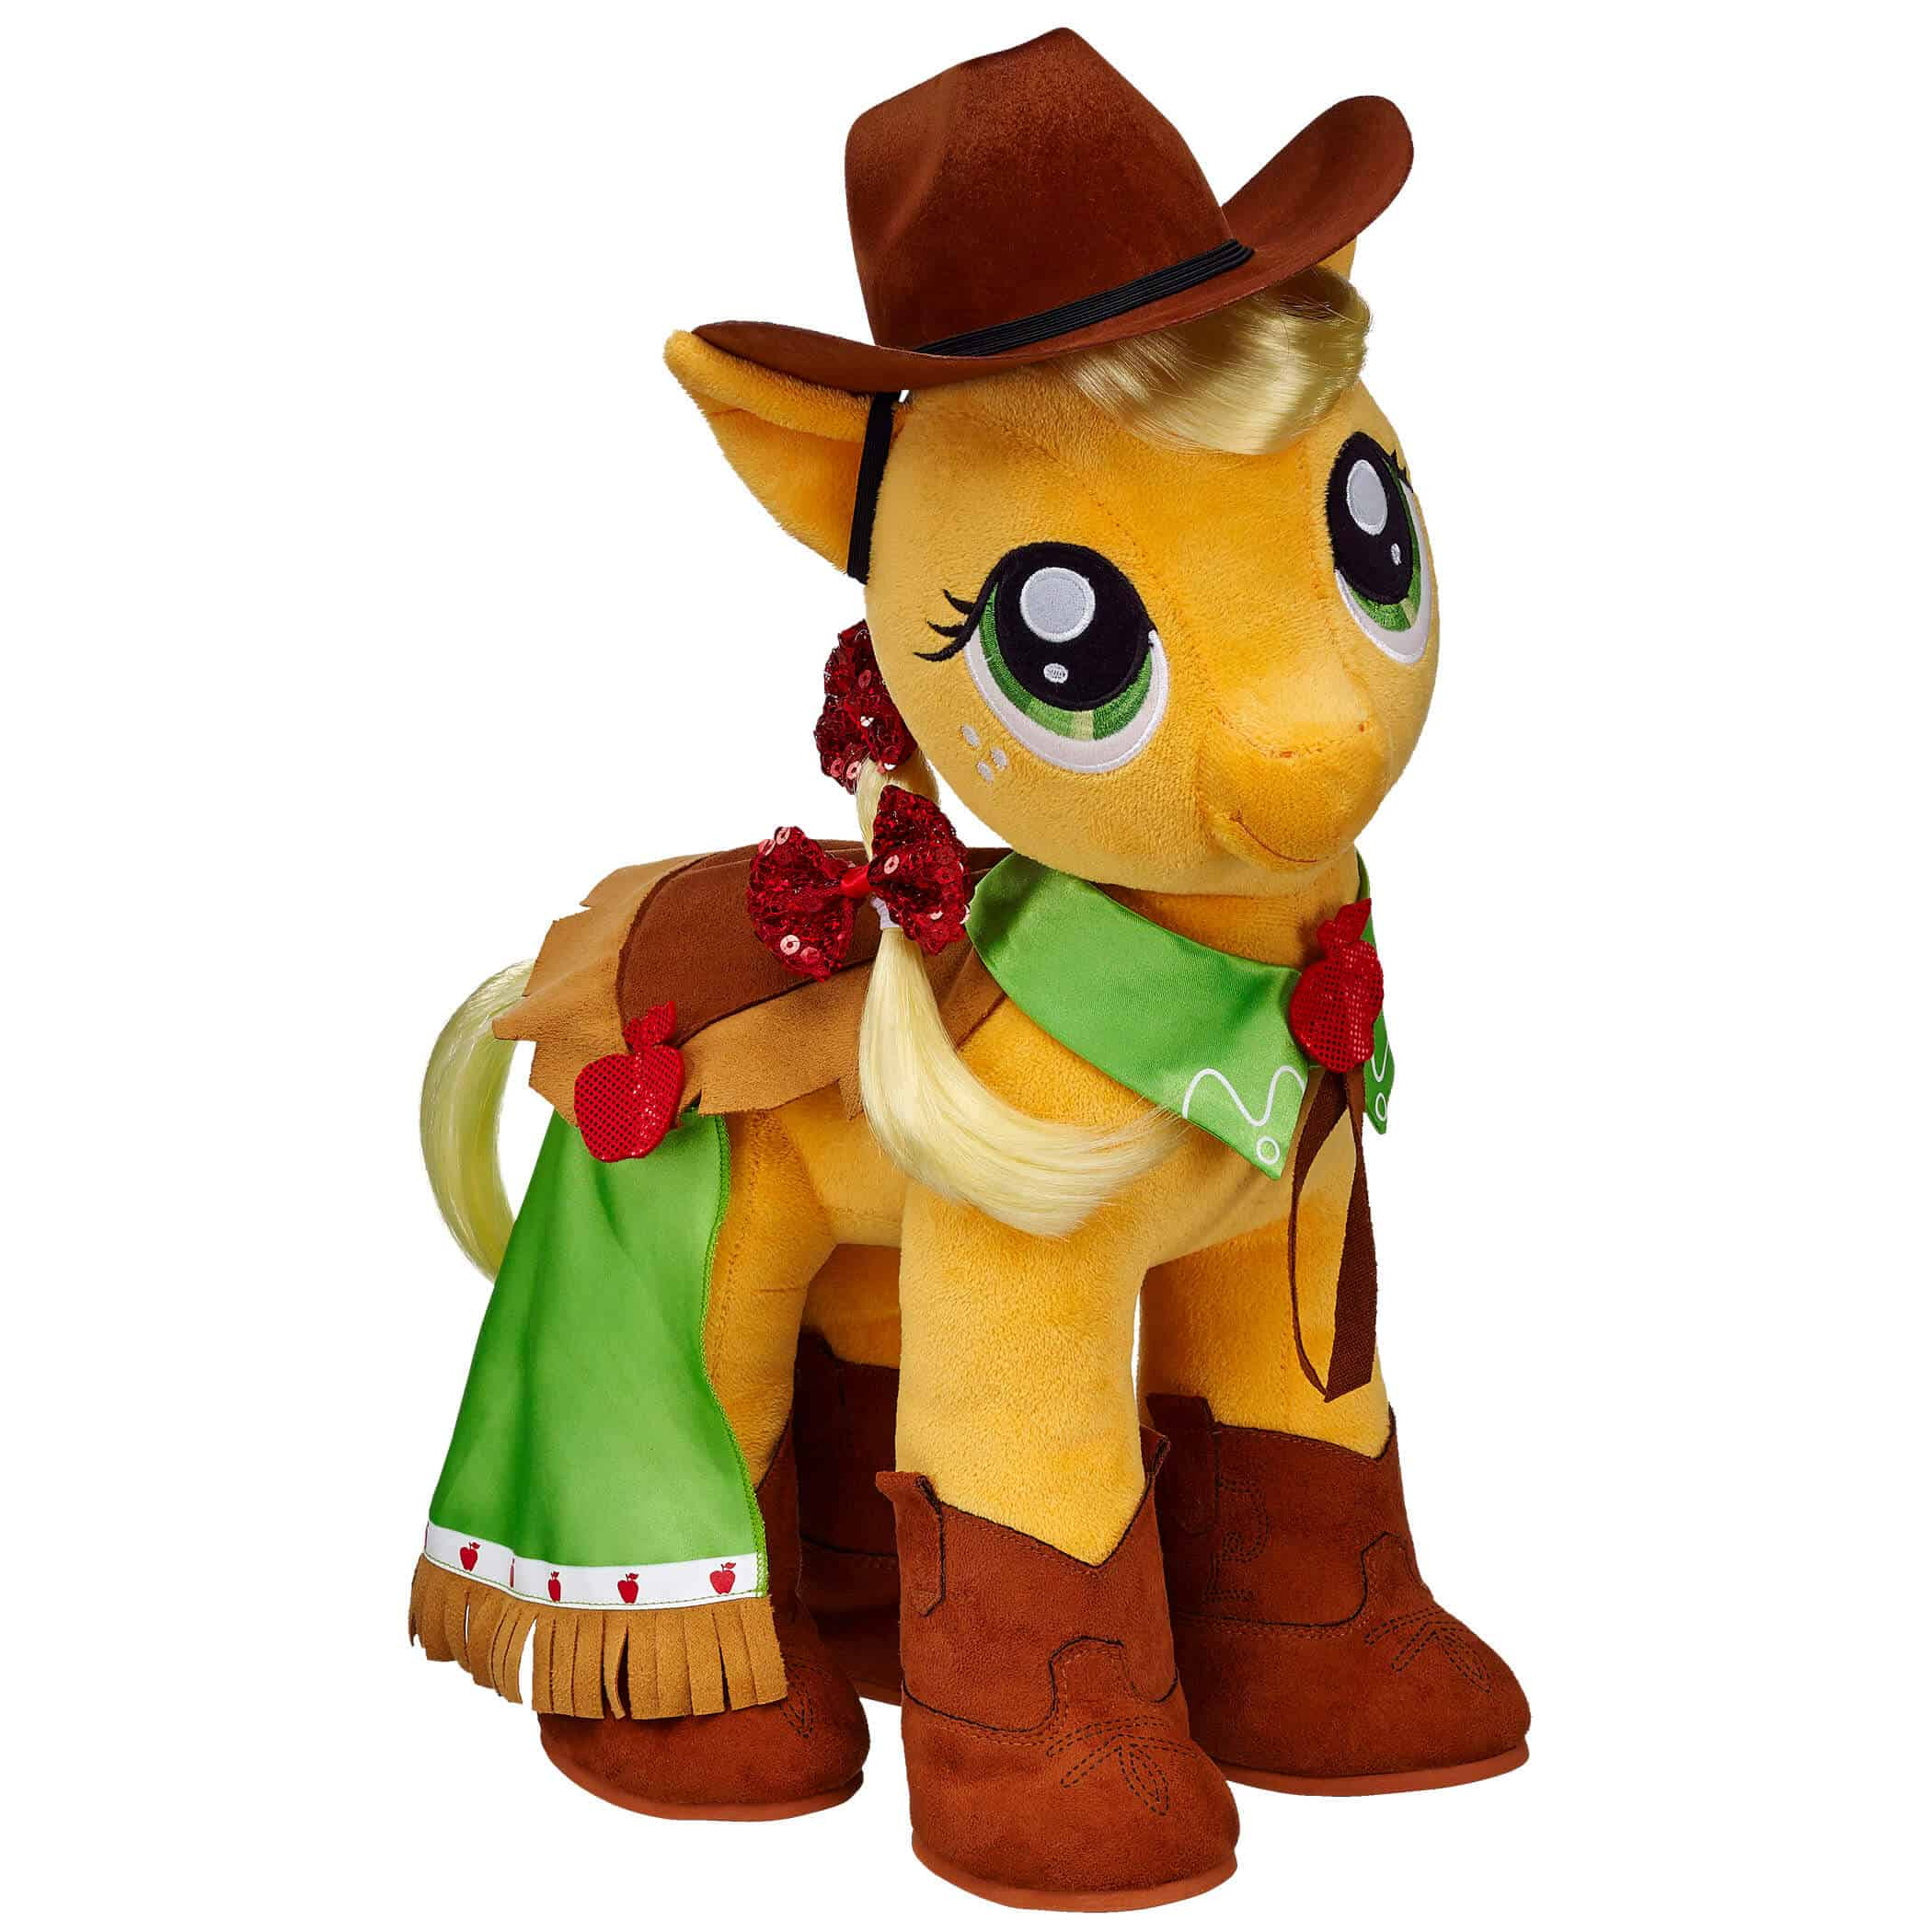 20 Perfect Gifts For The Horse Crazy Kid – iHeartHorses